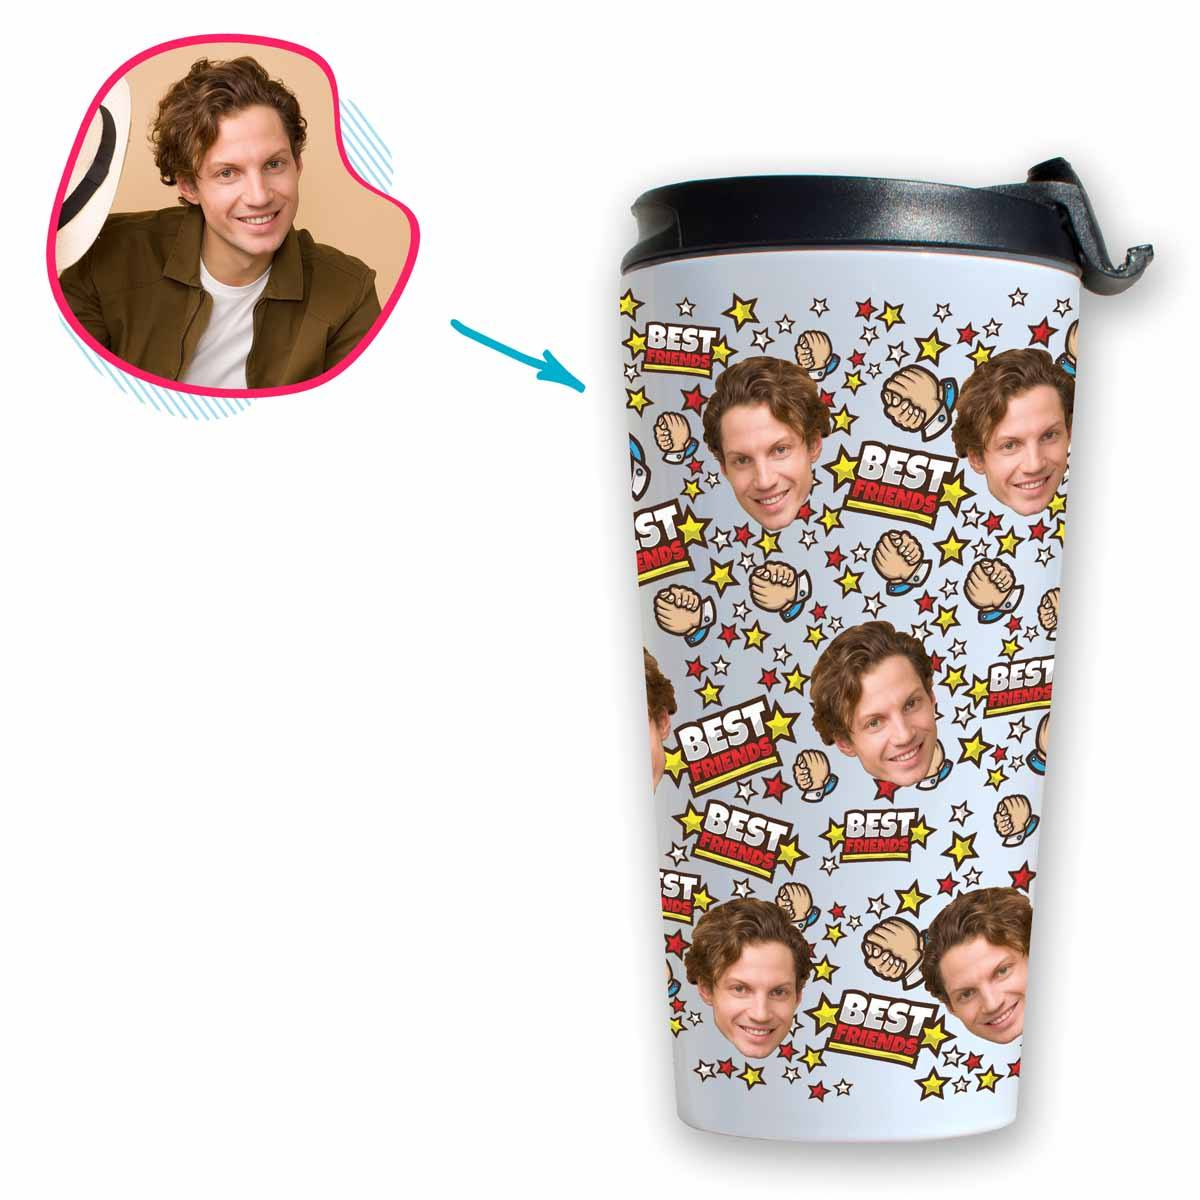 white Best Friends travel mug personalized with photo of face printed on it